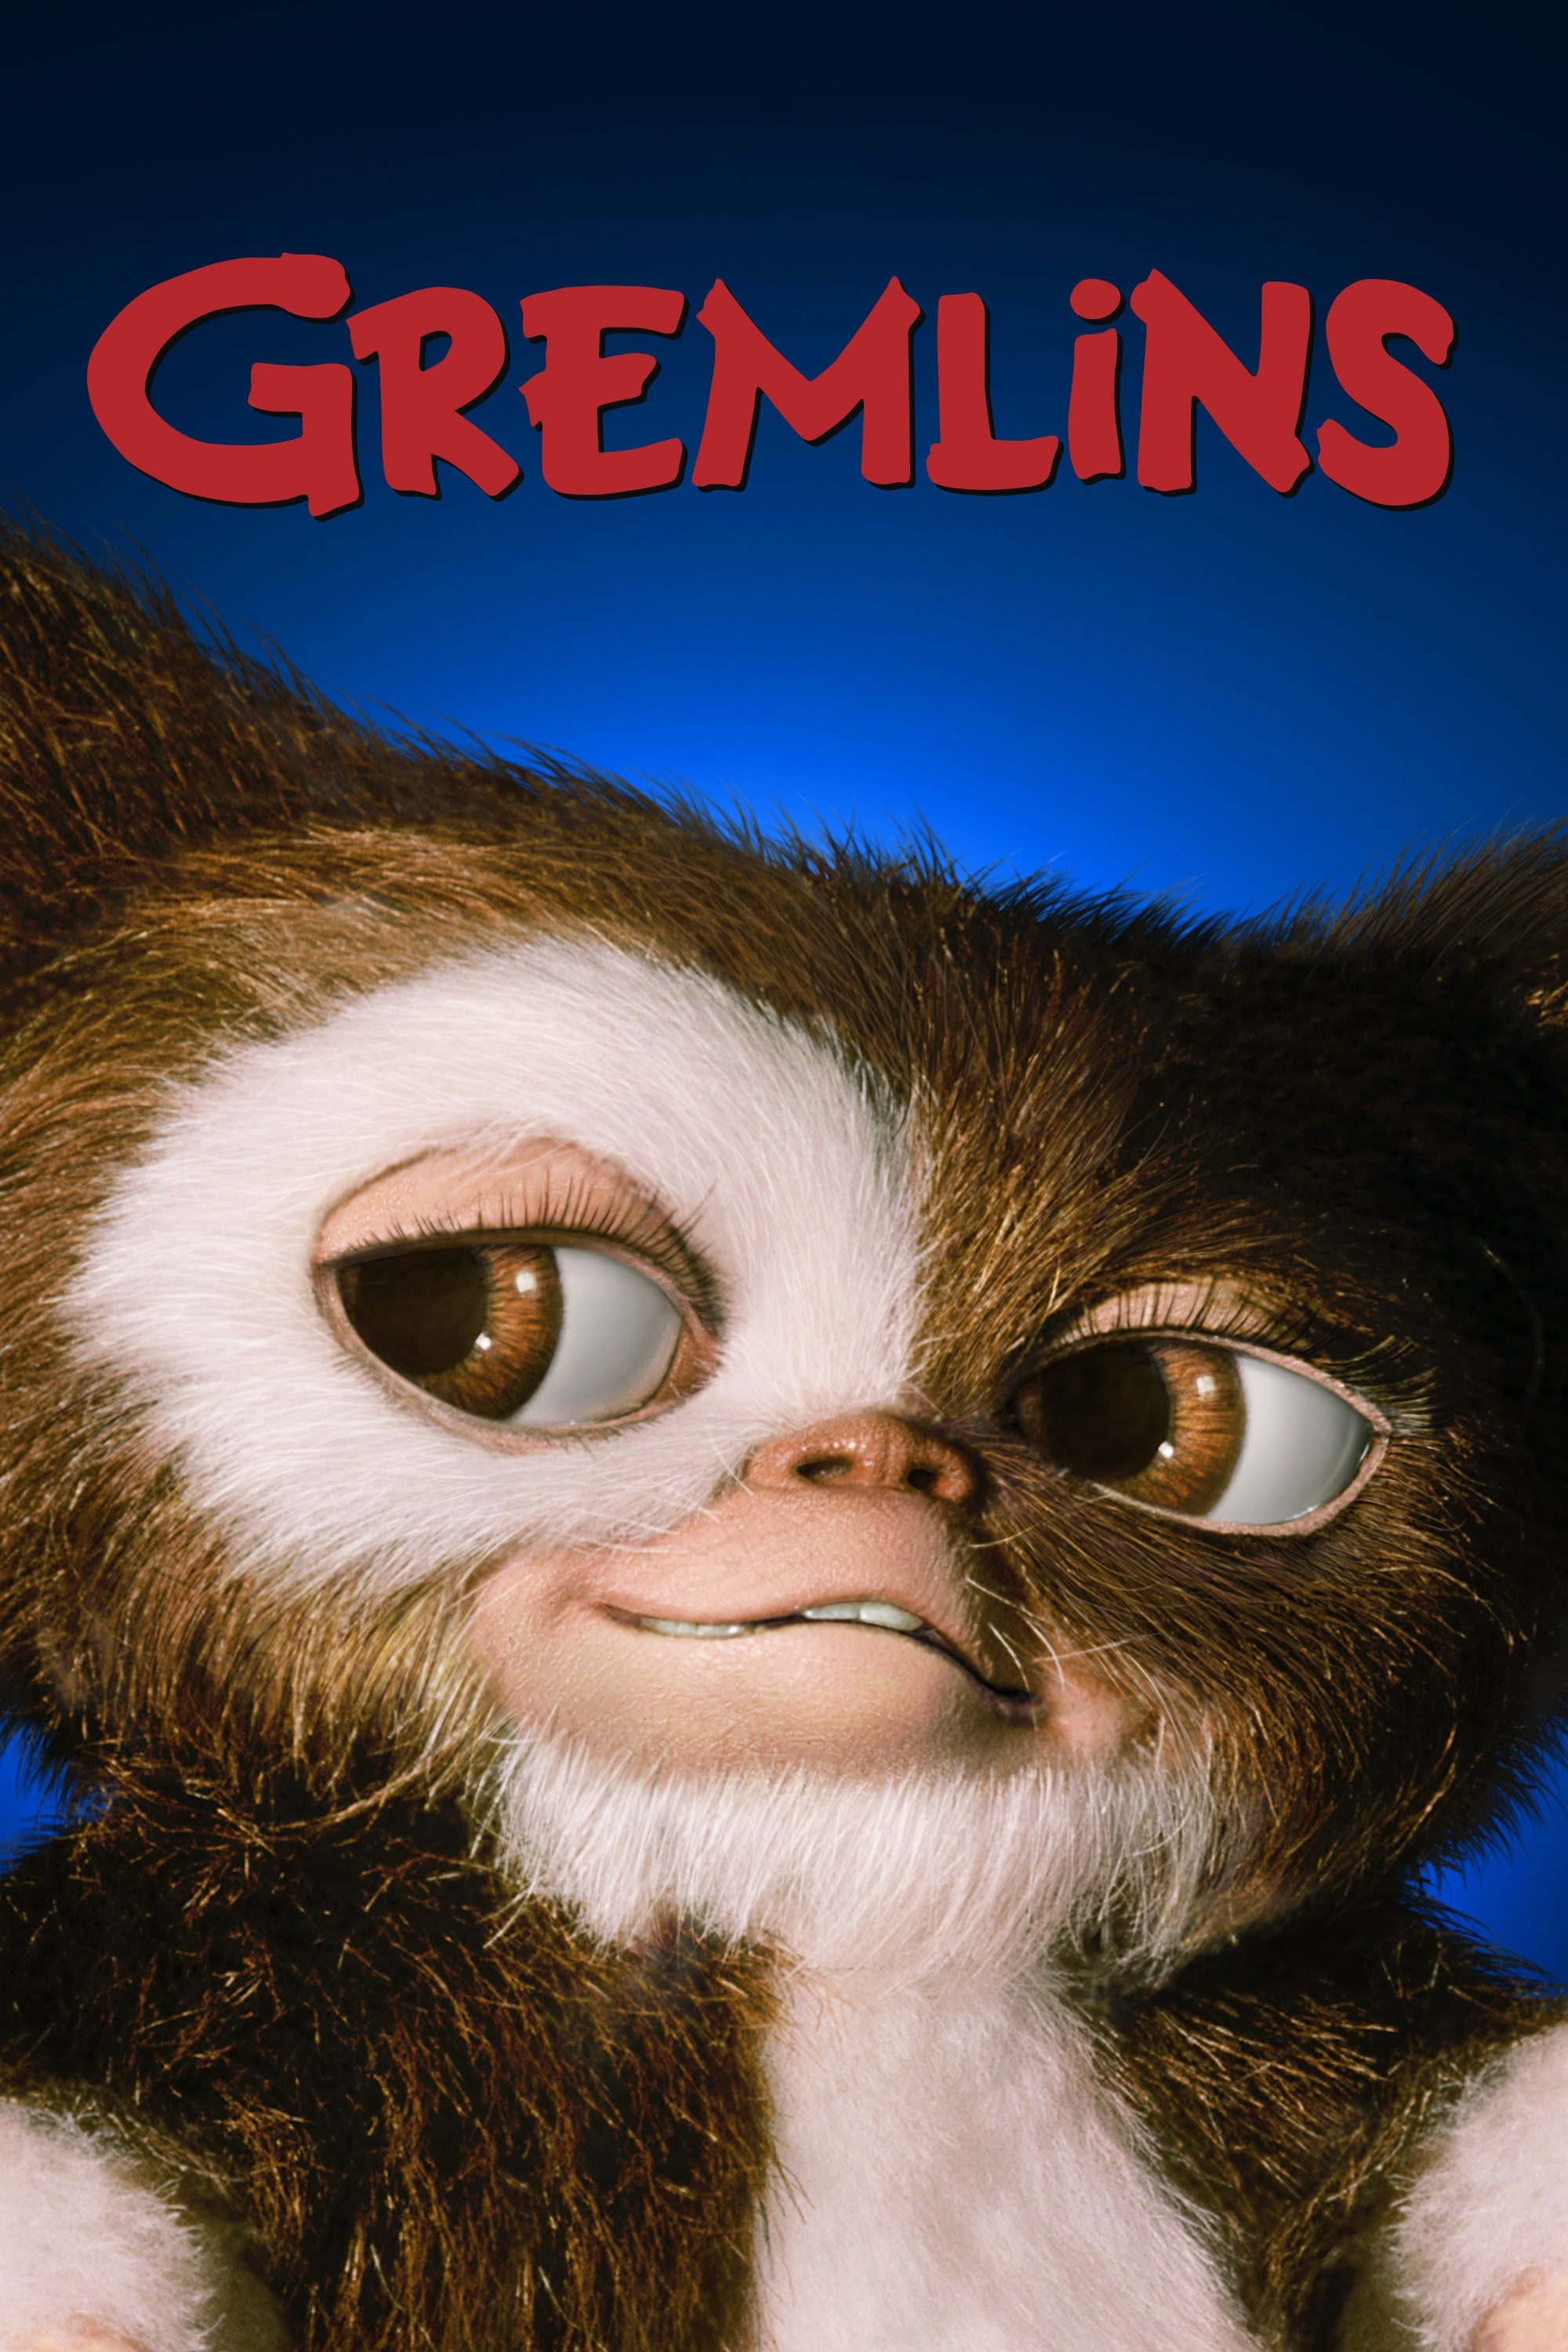 Theatrical poster for Gremlins